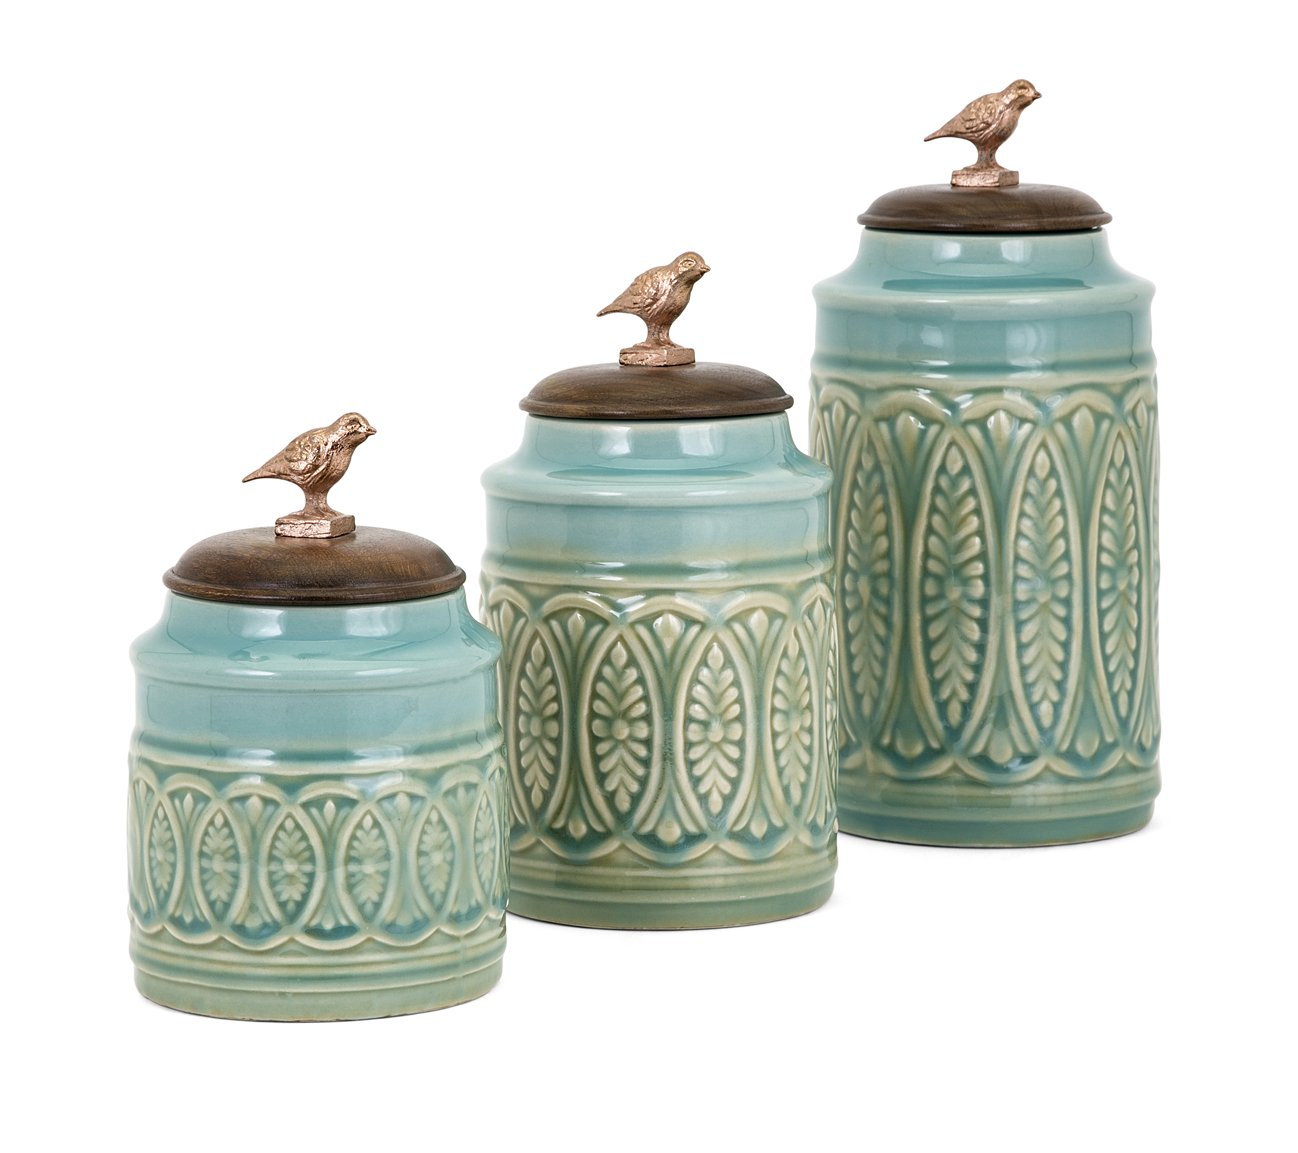 Trisha Yearwood Home Collection 95805-3 Ty Songbird Canisters - Set of 3 Trisha Yearwood Home Set of 3 Songbird Canisters by Trisha Yearwood Home Collection